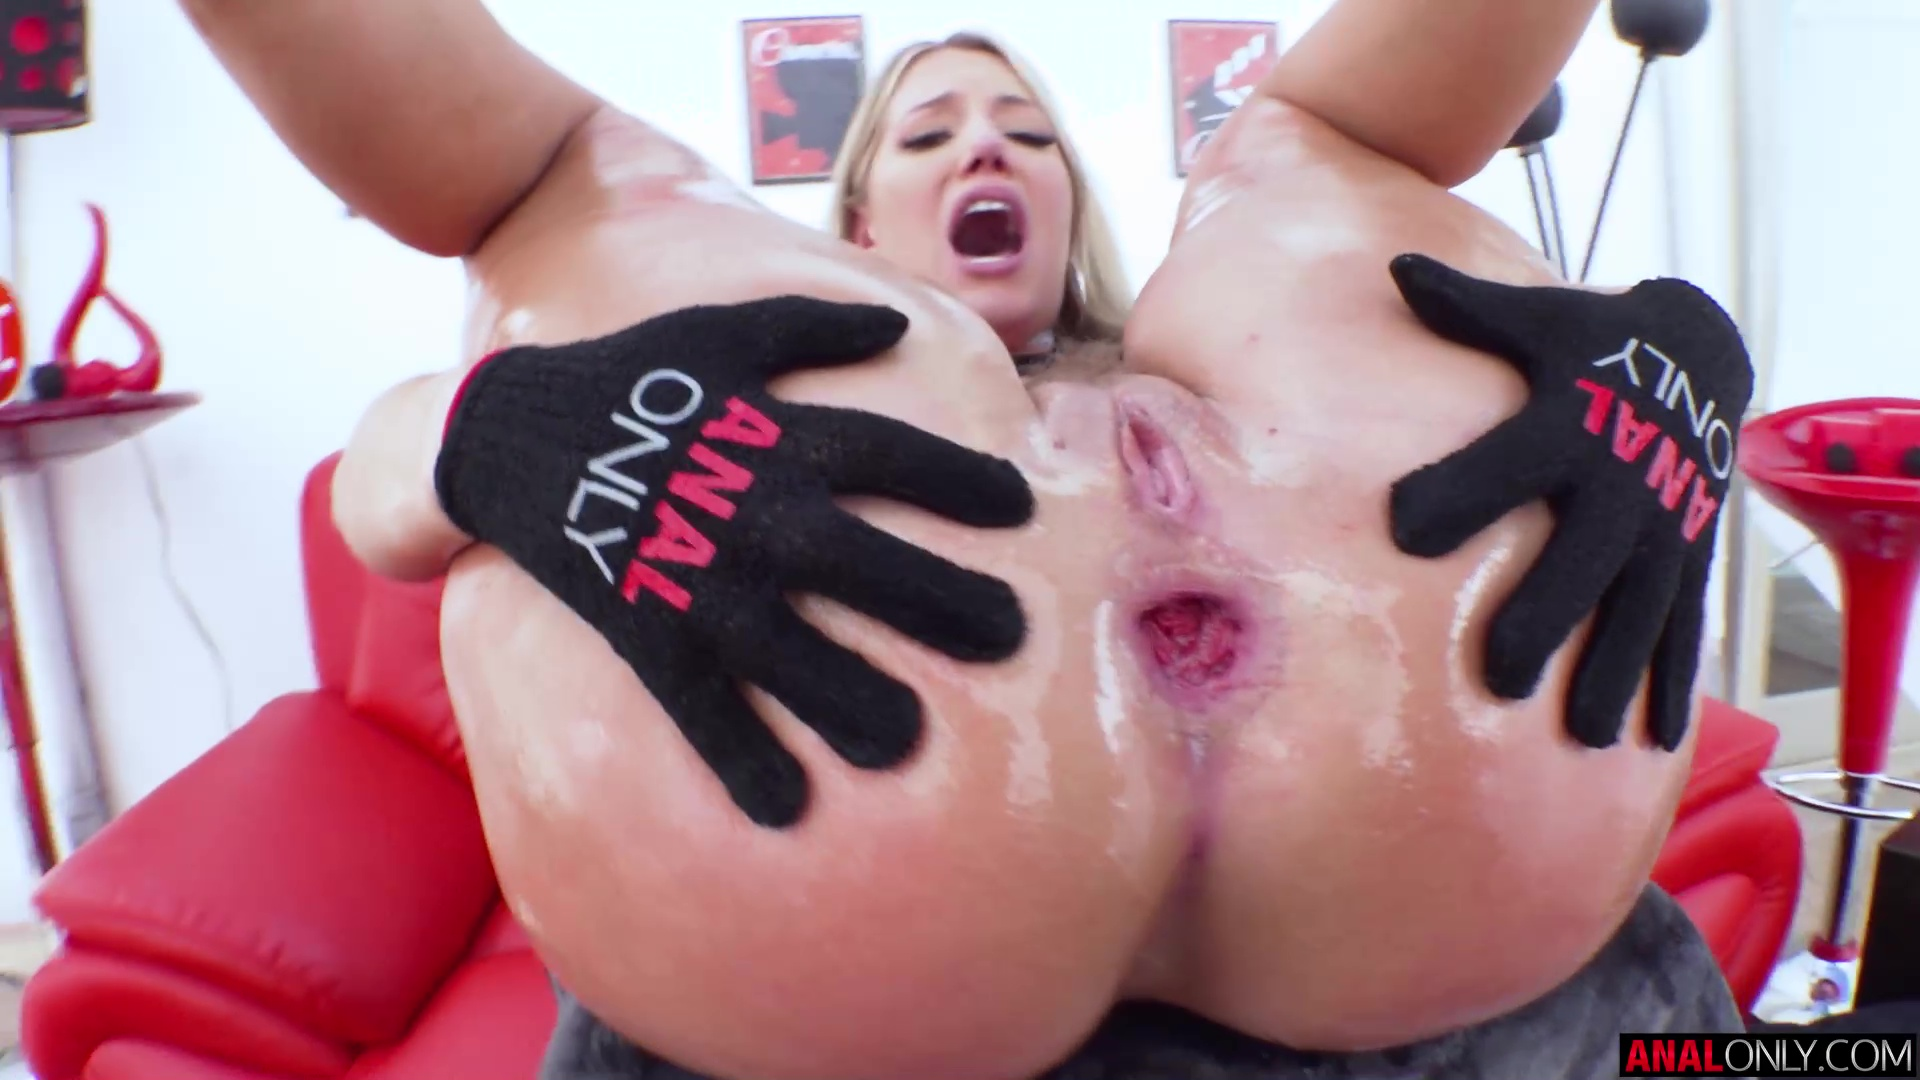 Download AnalOnly.com - Drilling Candice's Juicy Ass